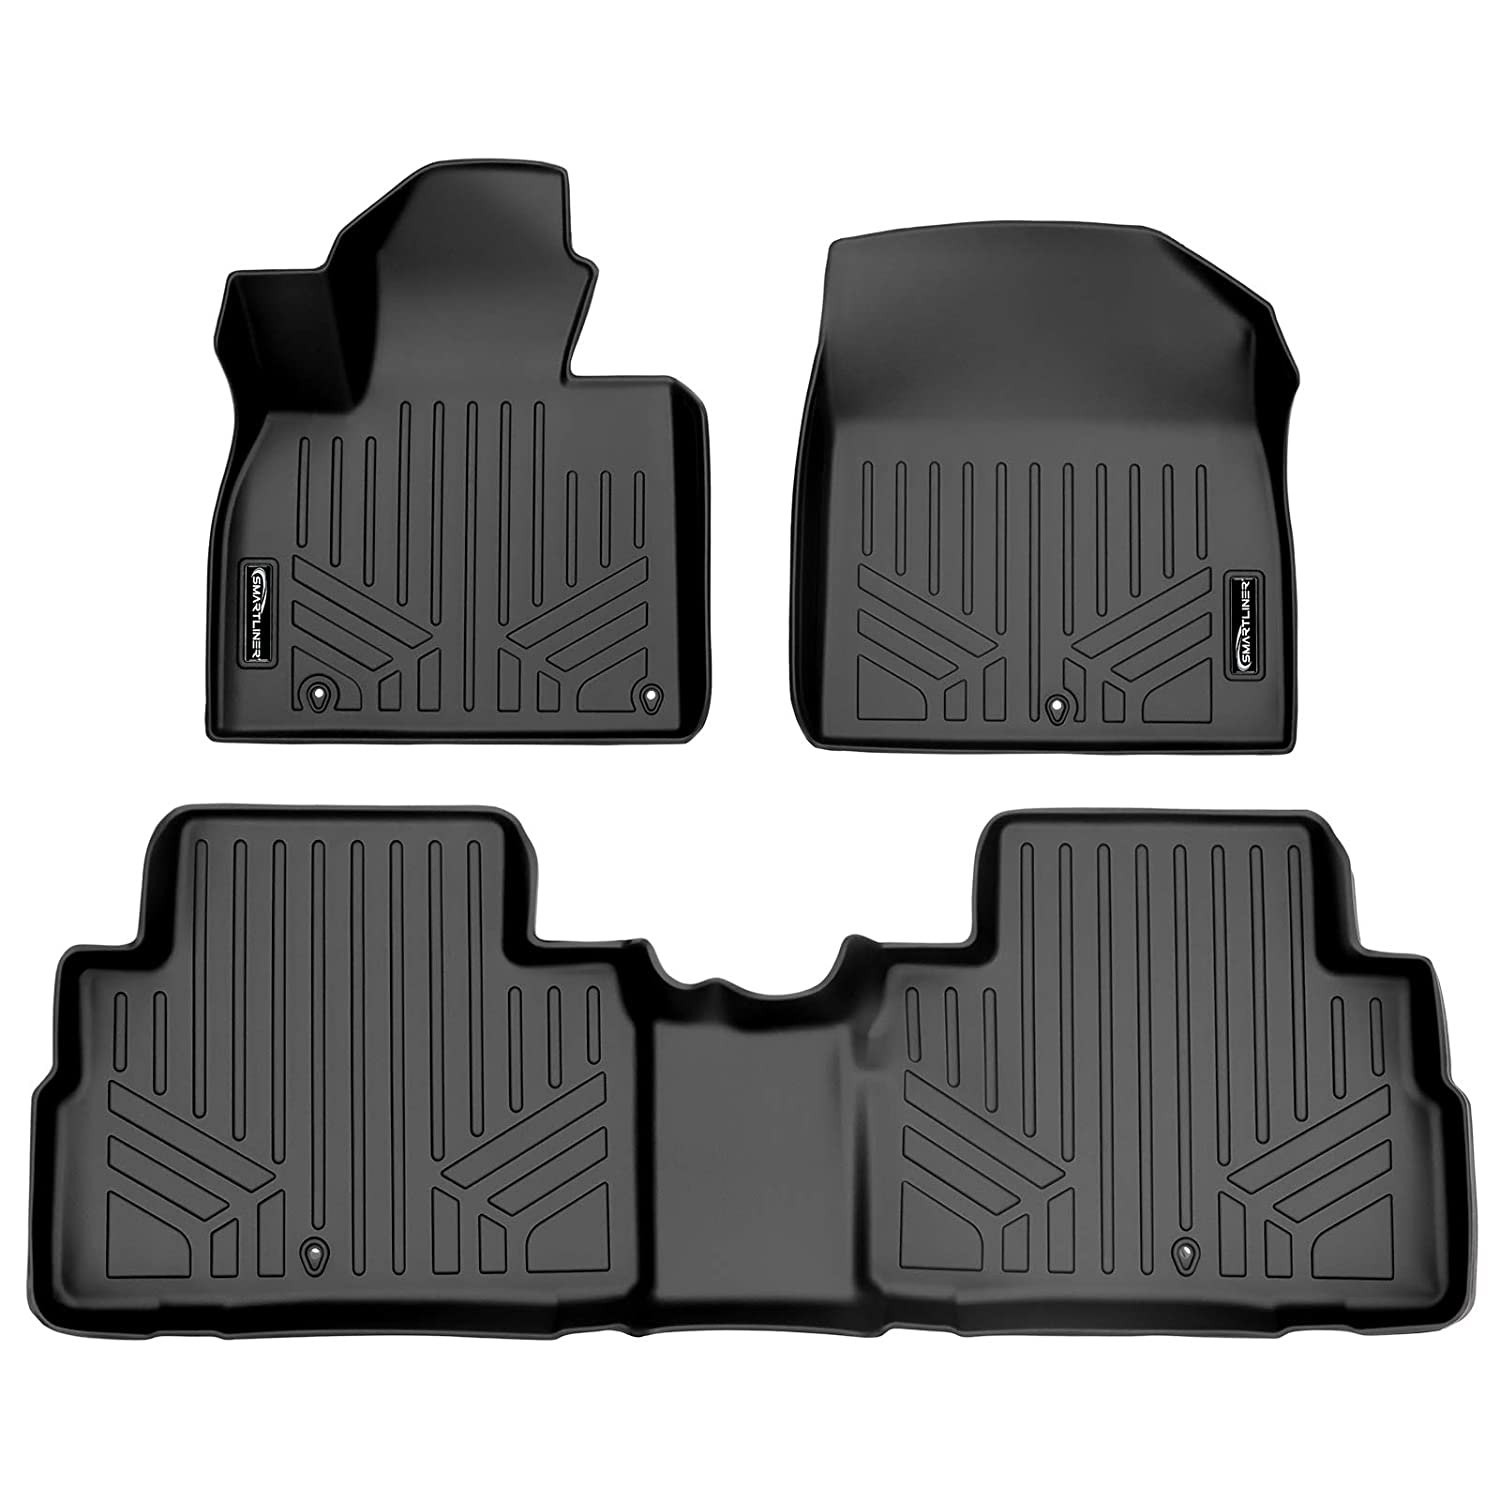 SMARTLINER Custom Fit Floor Mats 2 Row Liner Set Black for 2020 Kia Telluride with 2nd Row Bench Seat